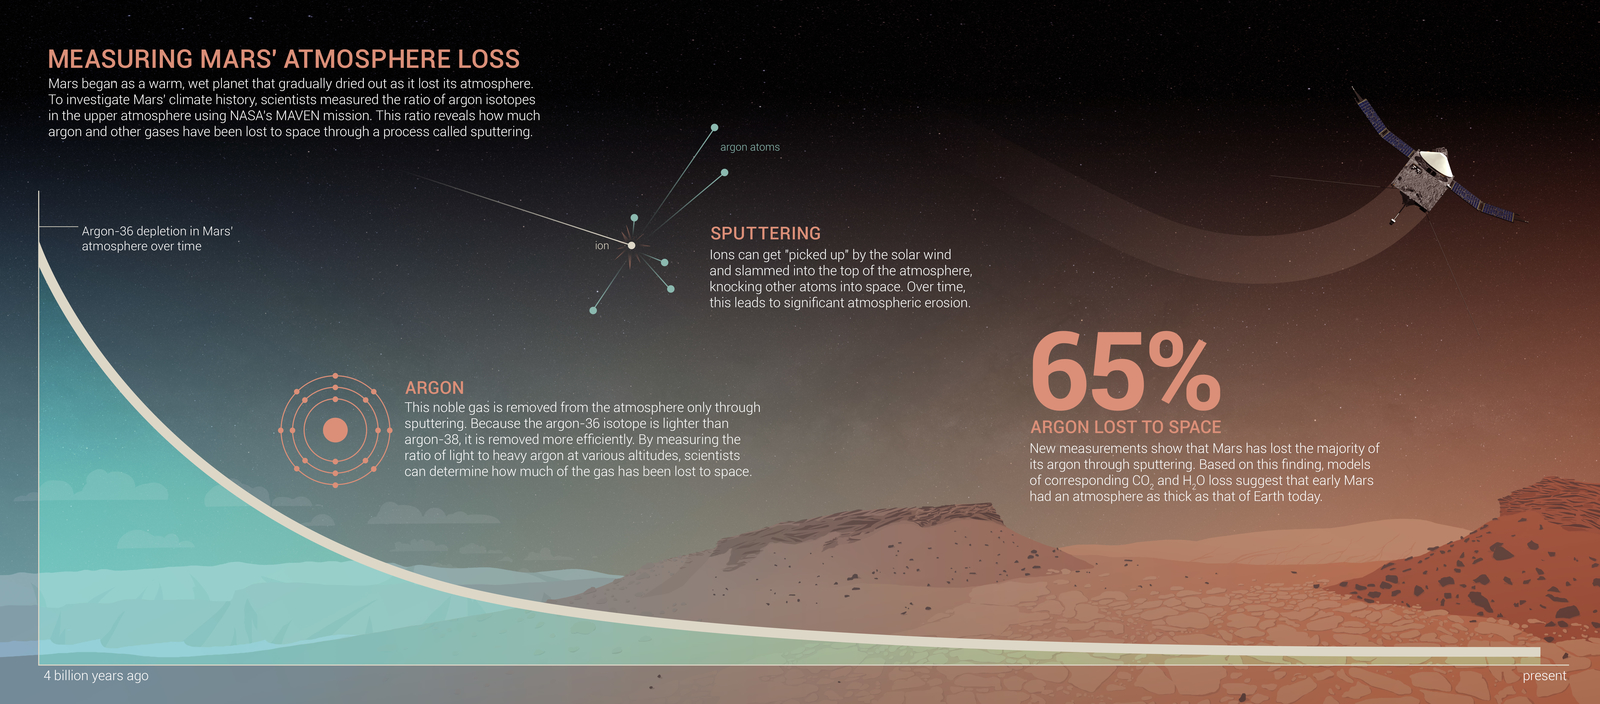 Approximate timescale of atmospheric loss. Credits: NASA's Goddard Space Flight Center